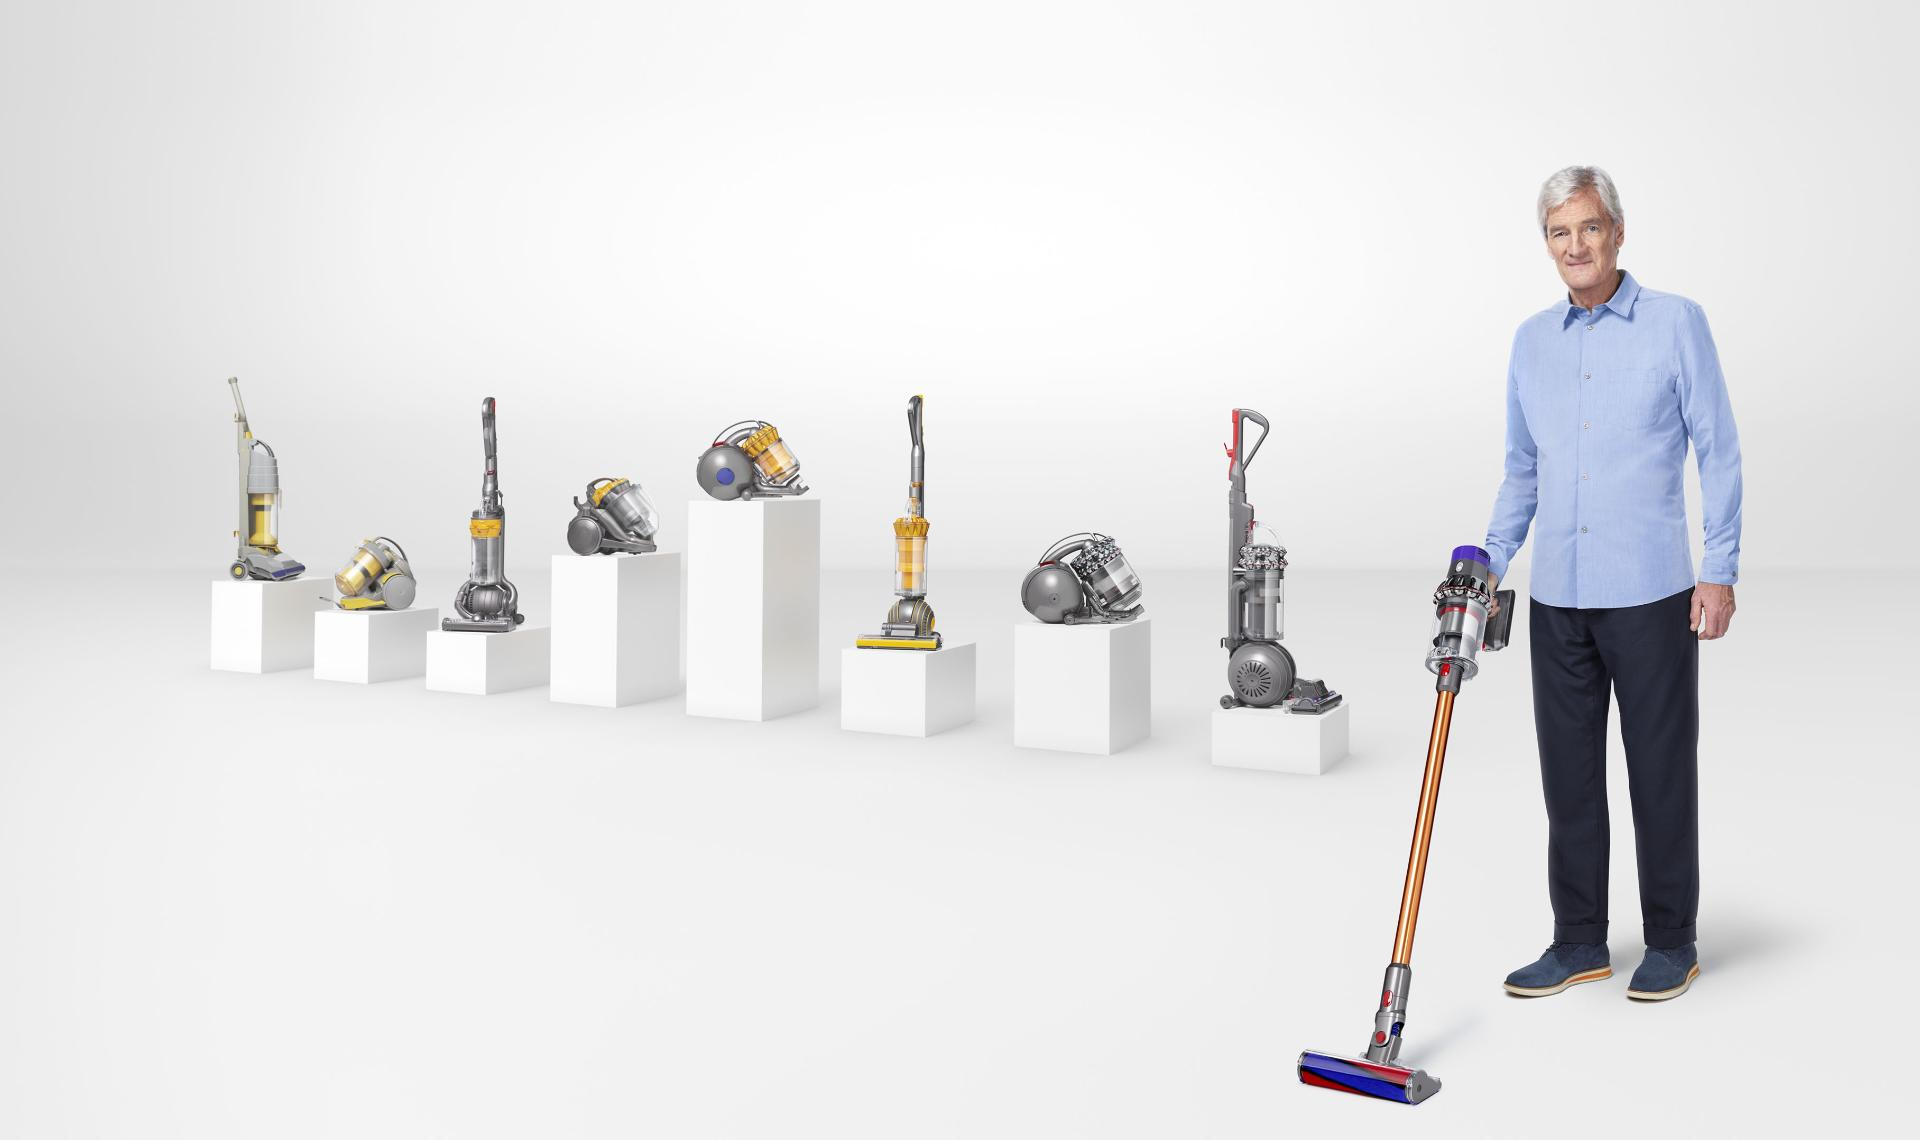 James Dyson with a range of Dyson vacuum cleaners